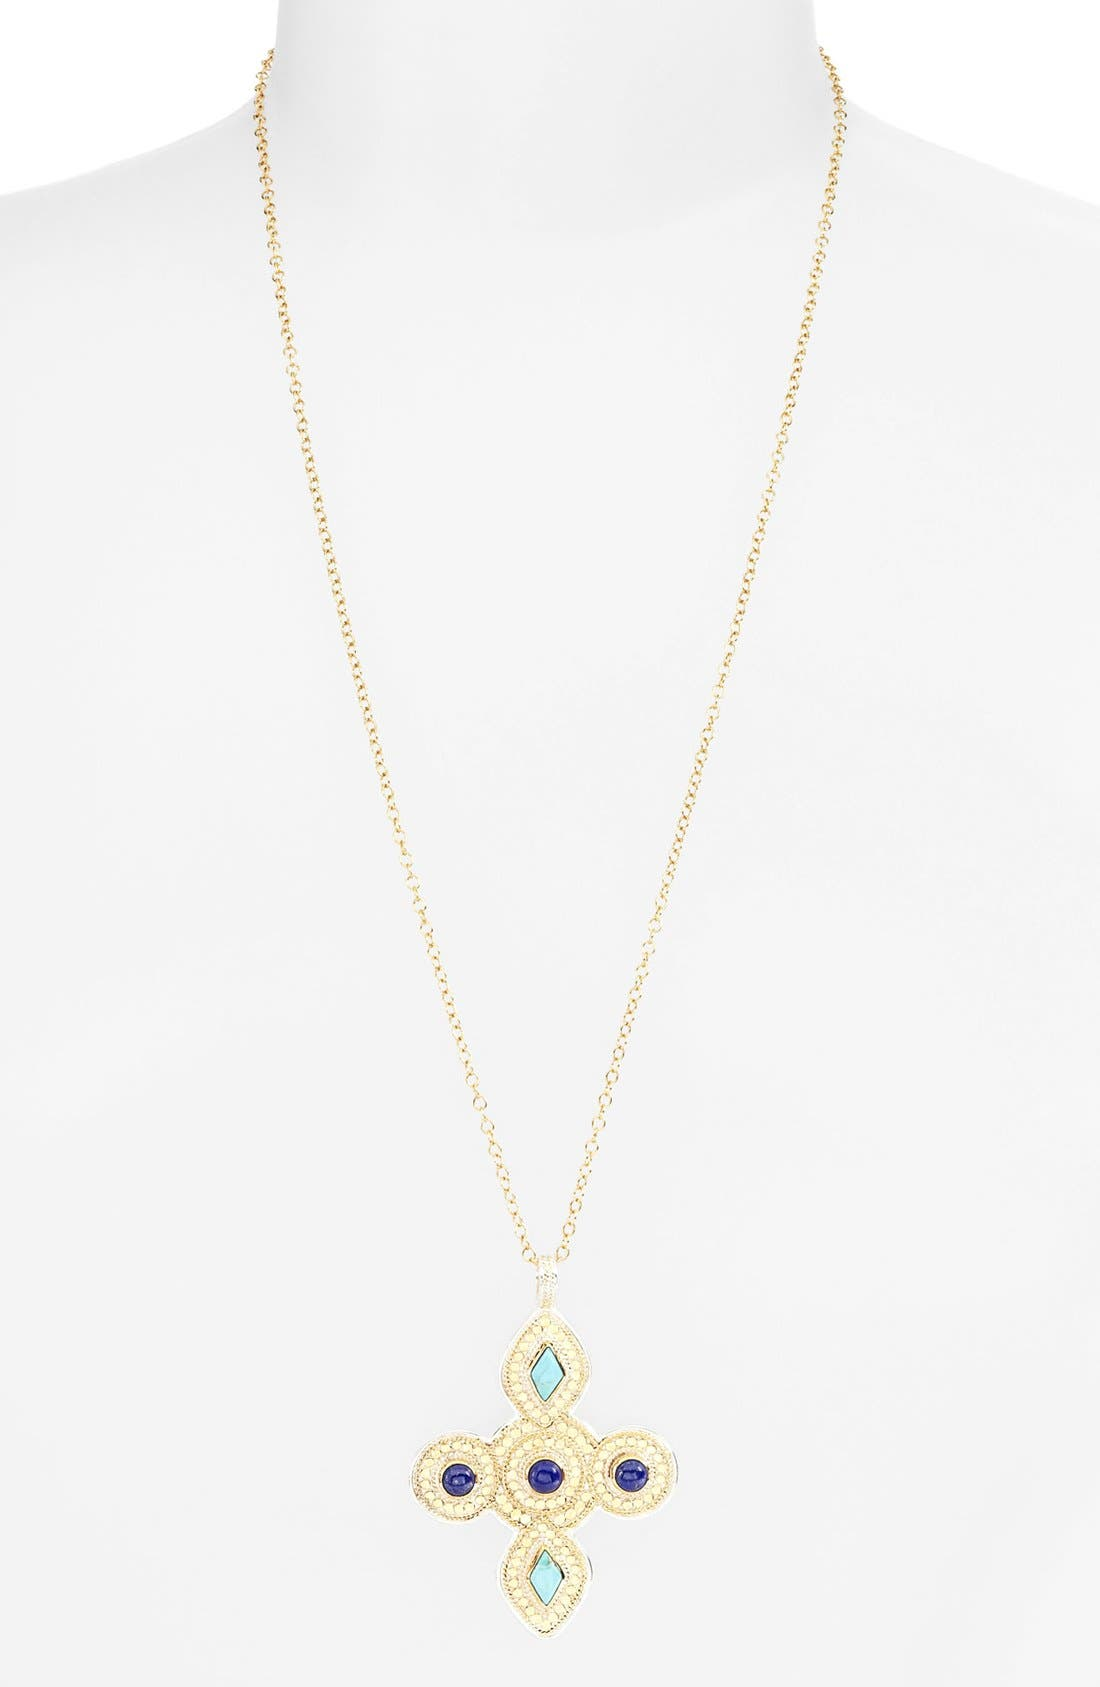 Main Image - Anna Beck 'Gili' Maltese Cross Pendant Necklace